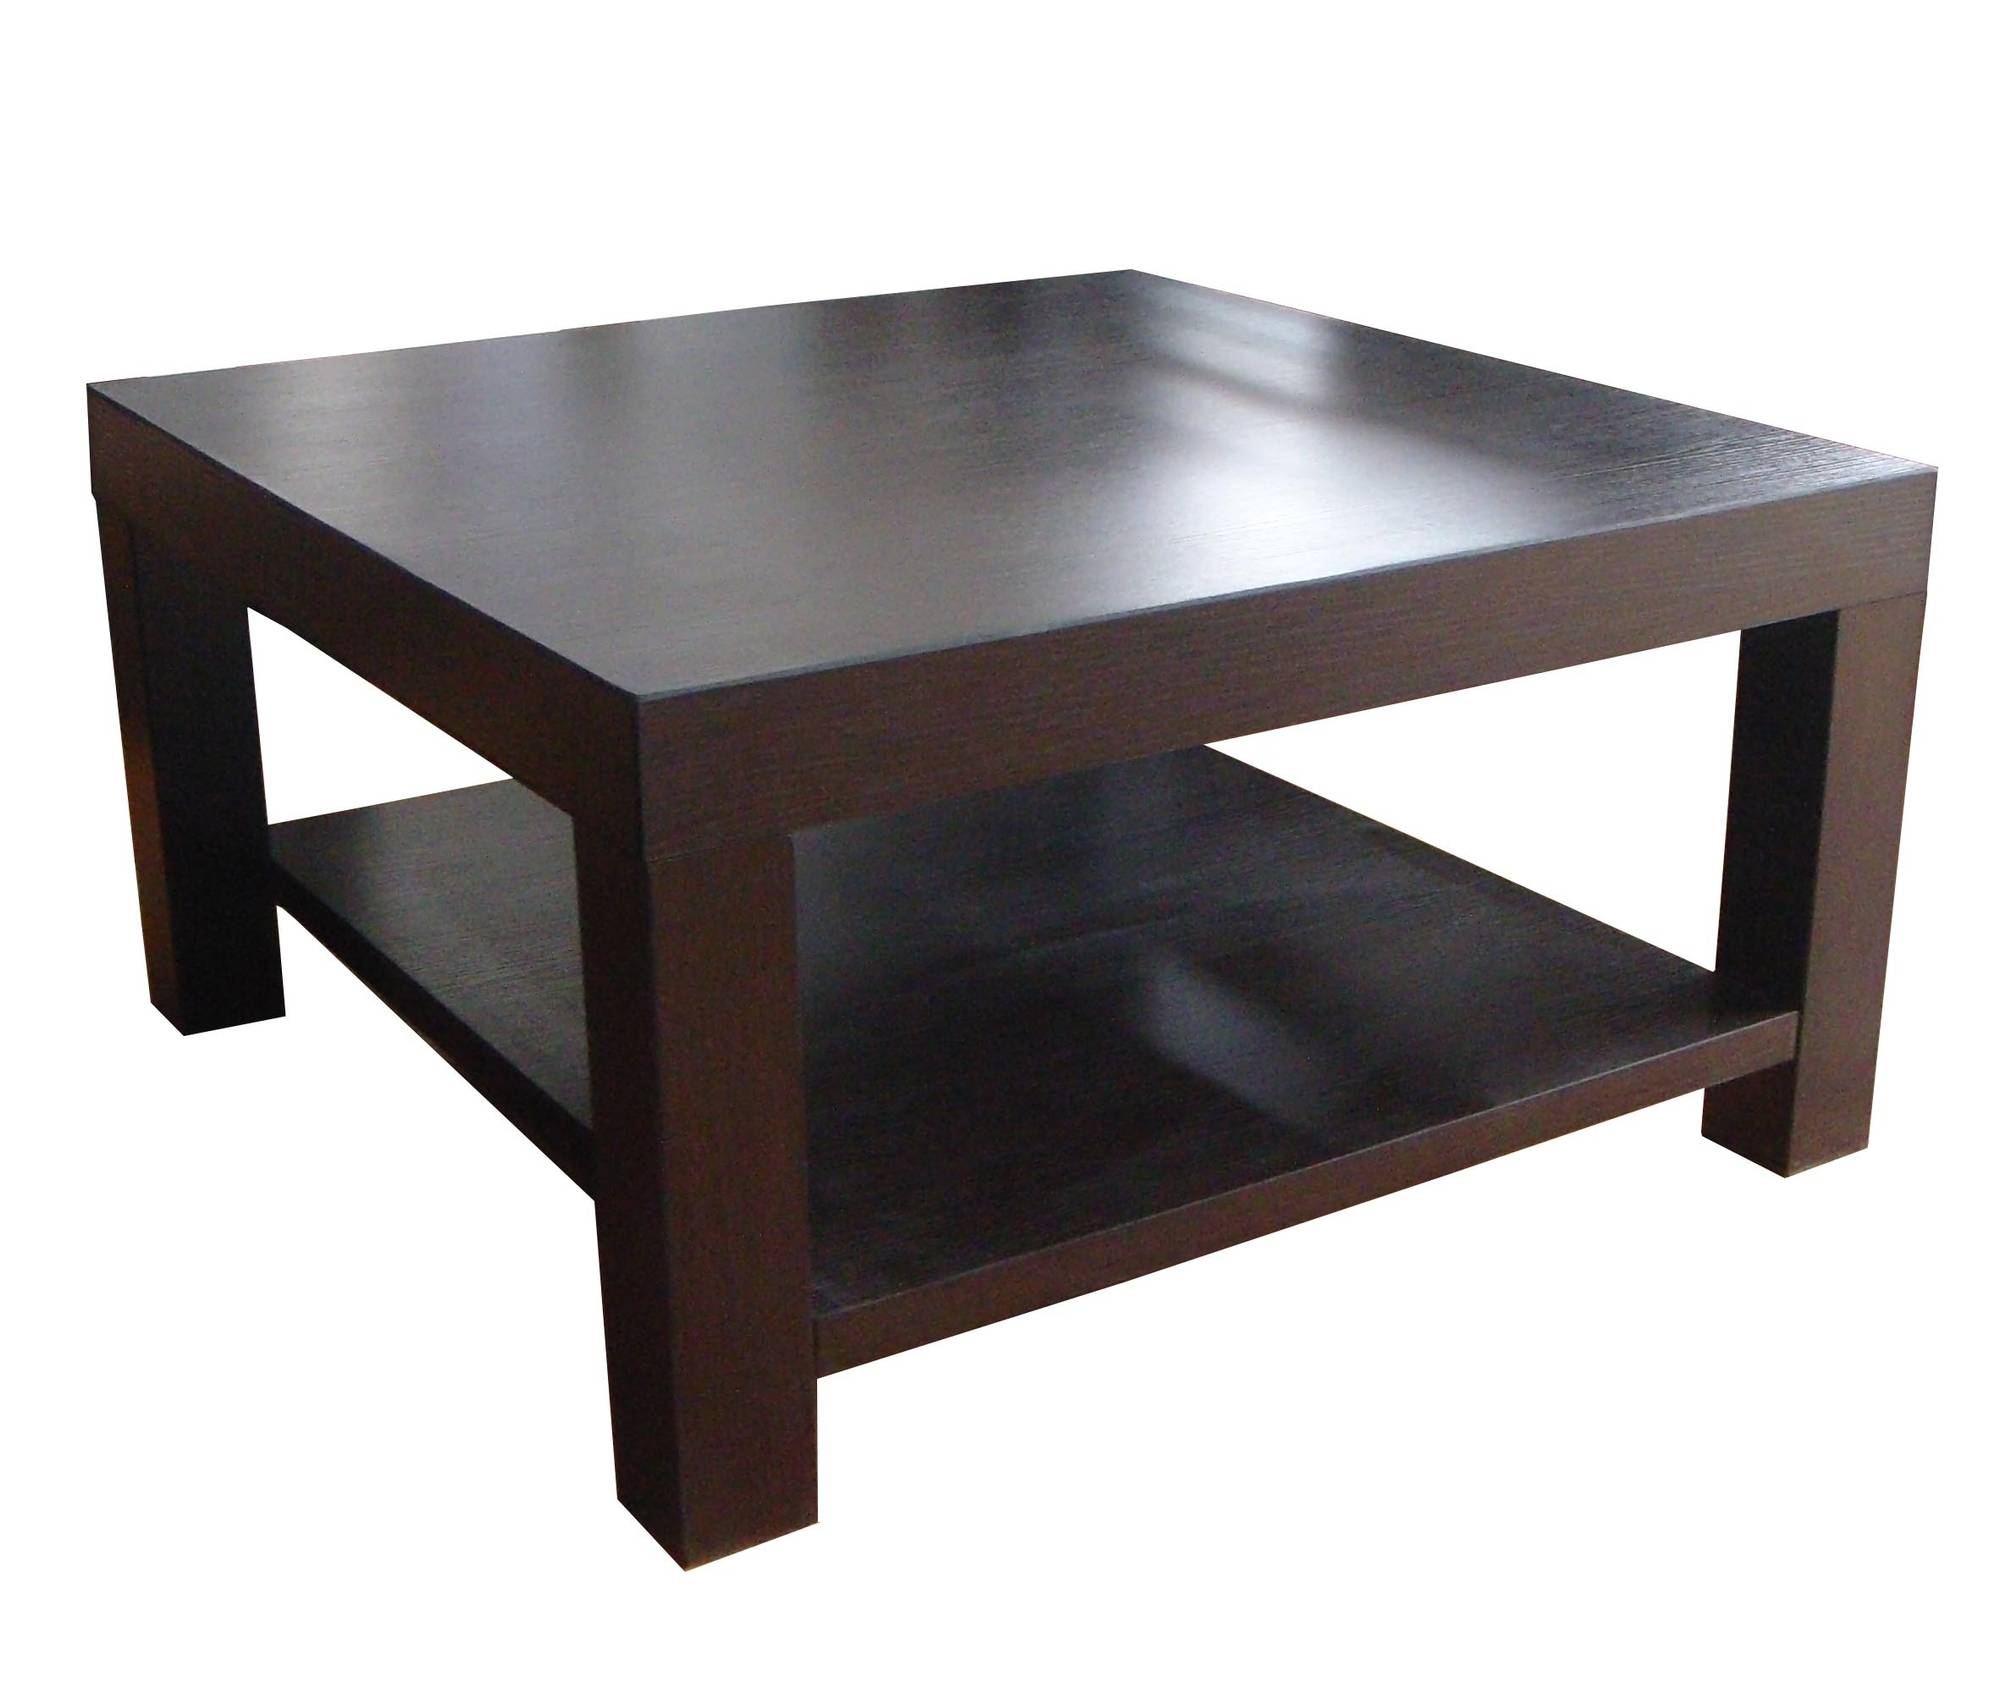 Coffee Table. Brilliant Square Black Coffee Table Designs with Black Coffee Tables With Storage (Image 8 of 30)